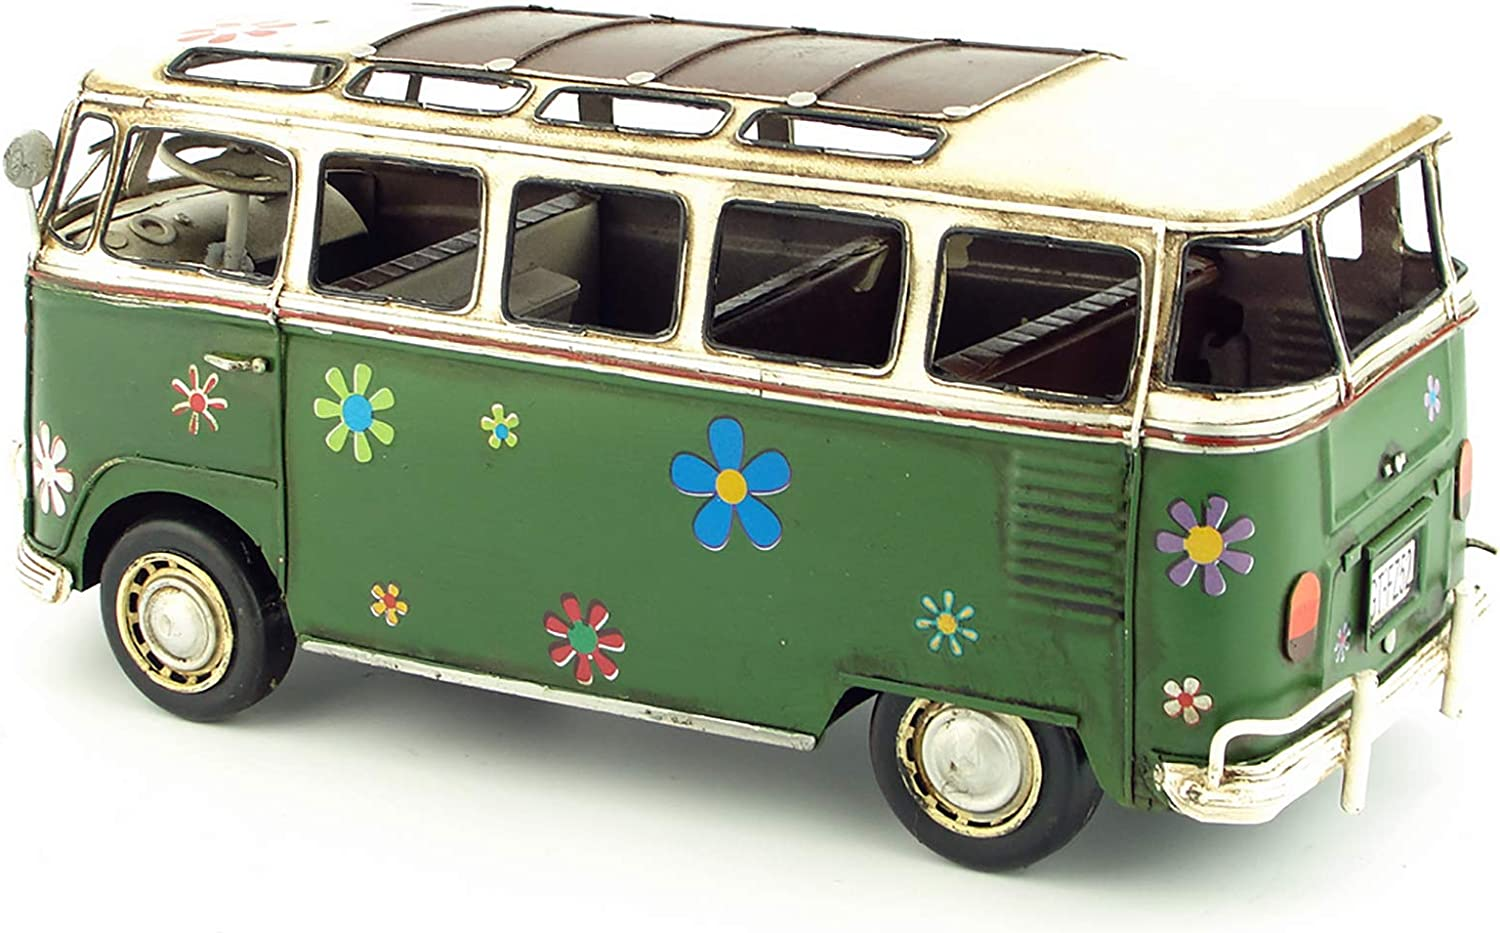 YHYGOO Antique Vintage Car OFFicial shop Recommended Model Handmade Bus Caf for Retro Home